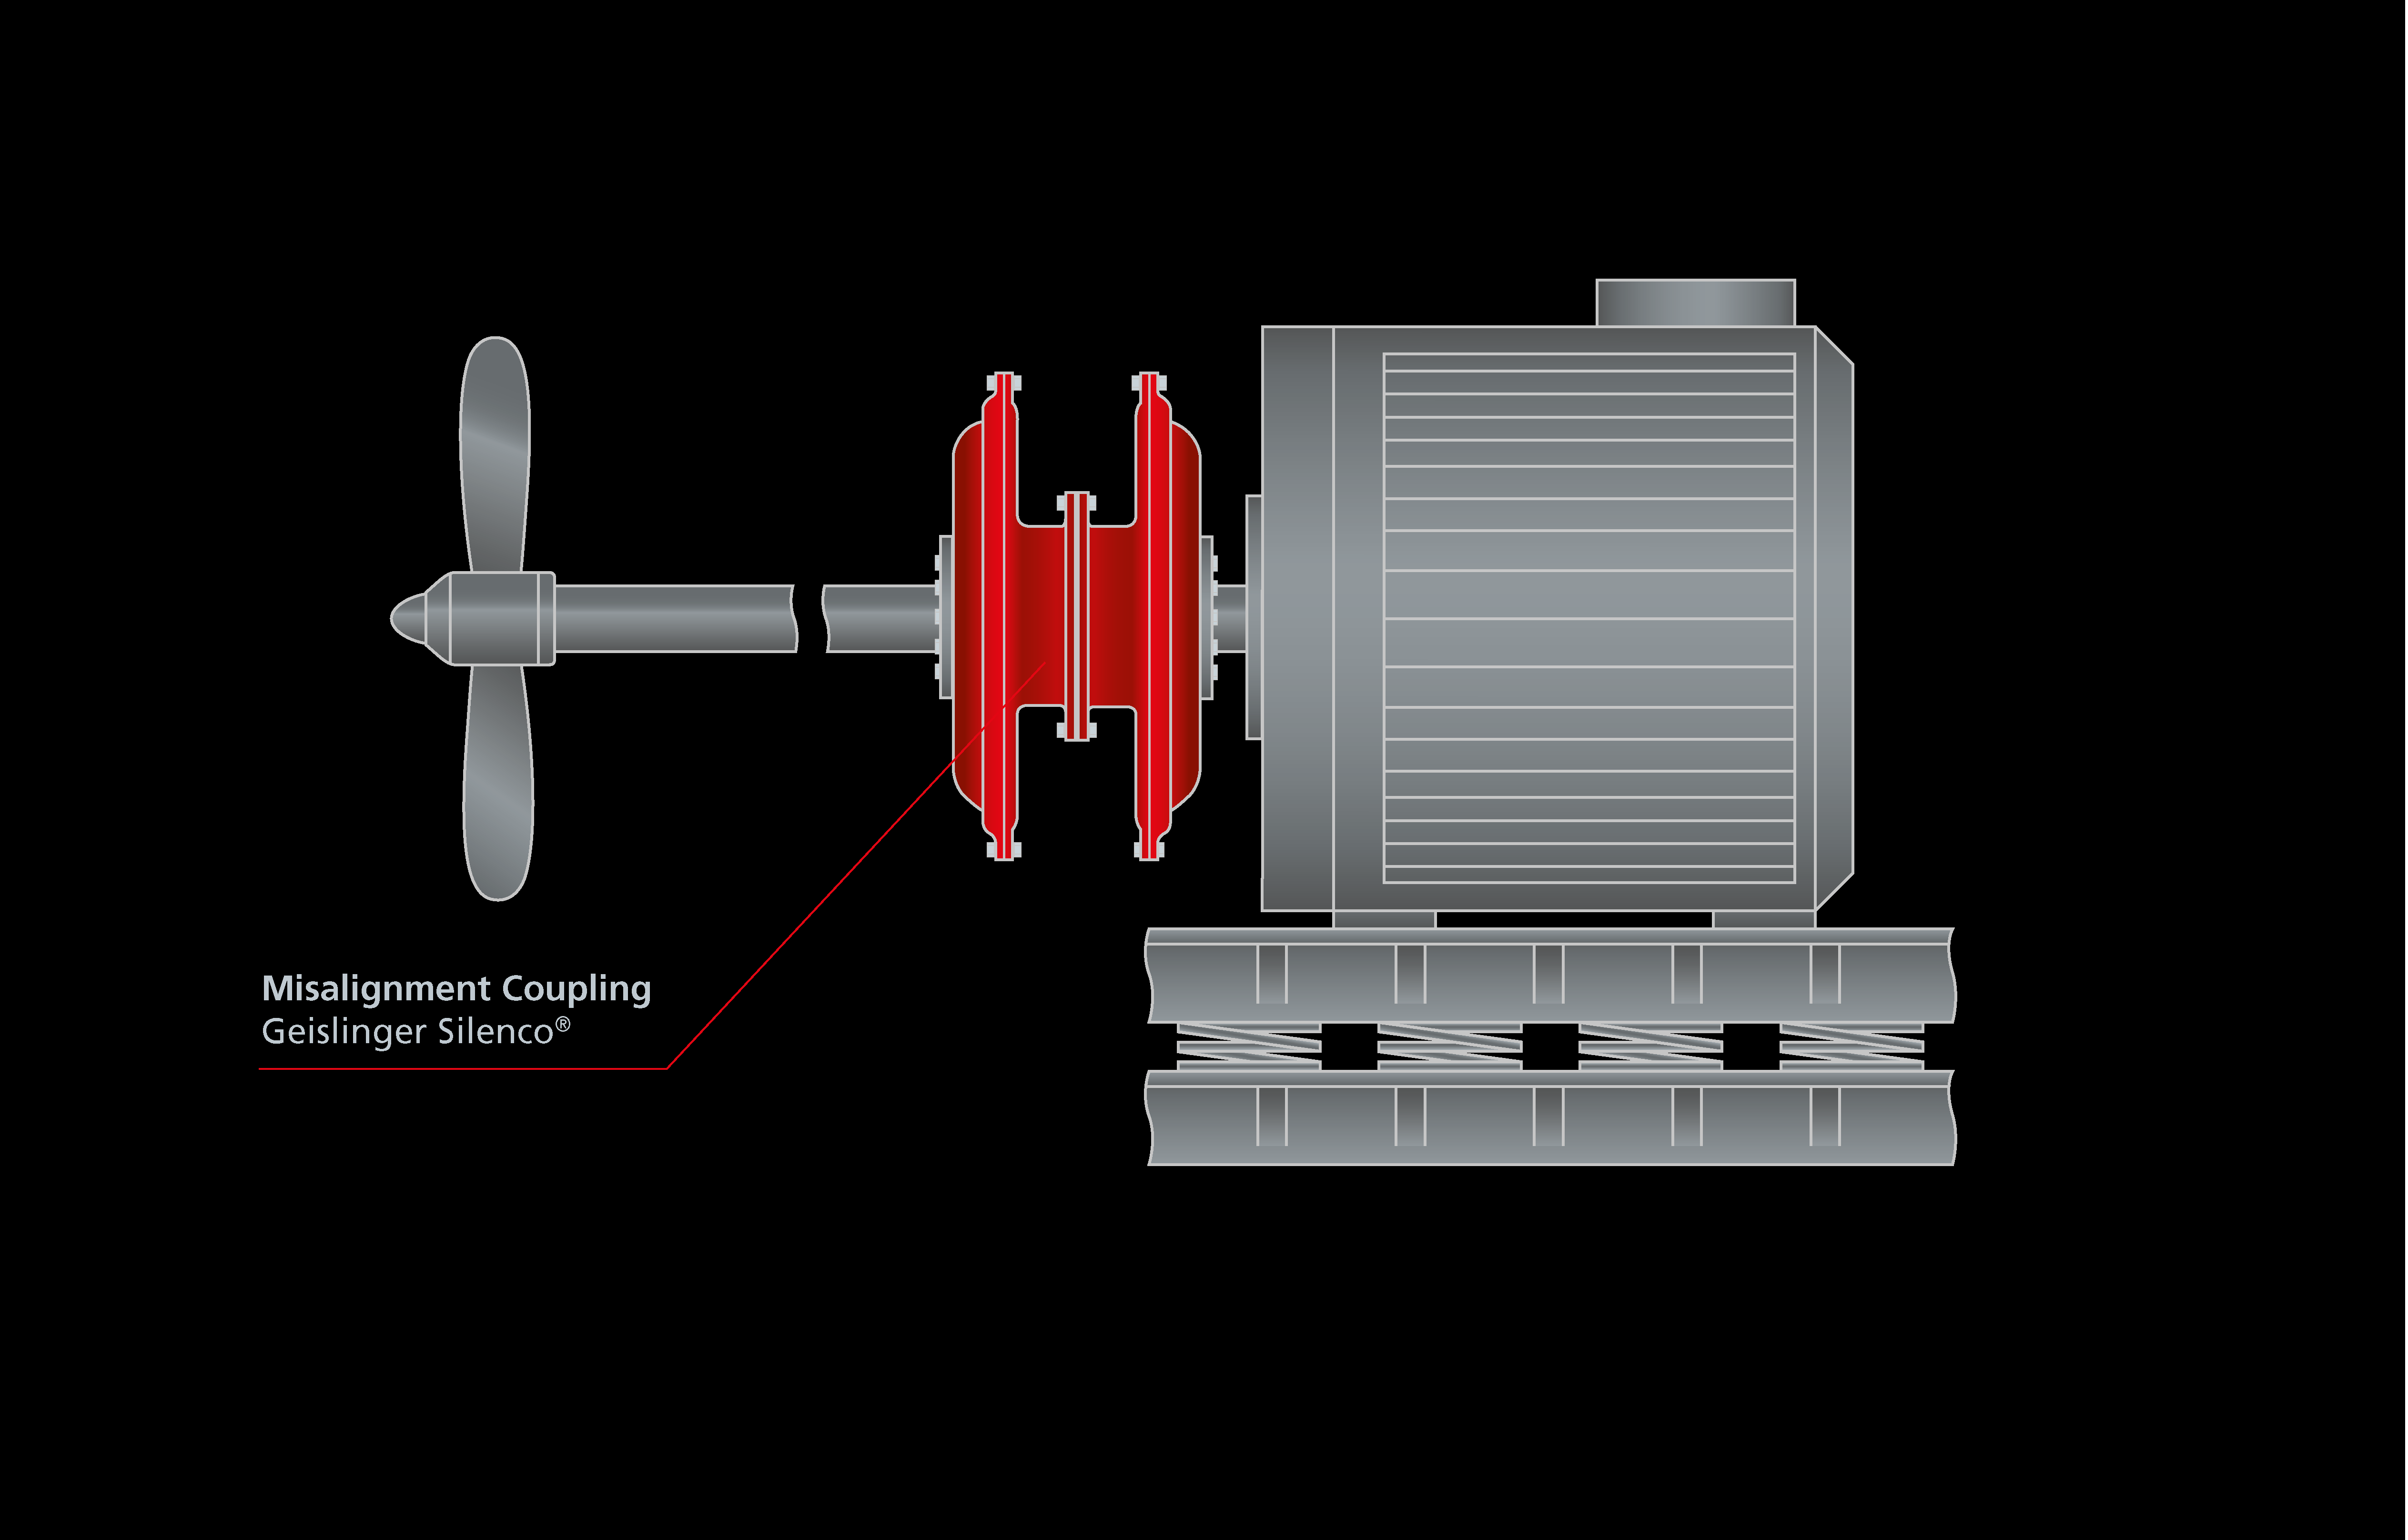 5 Elastically Mounted Electric Motor With A High Acoustic Sound Insulation